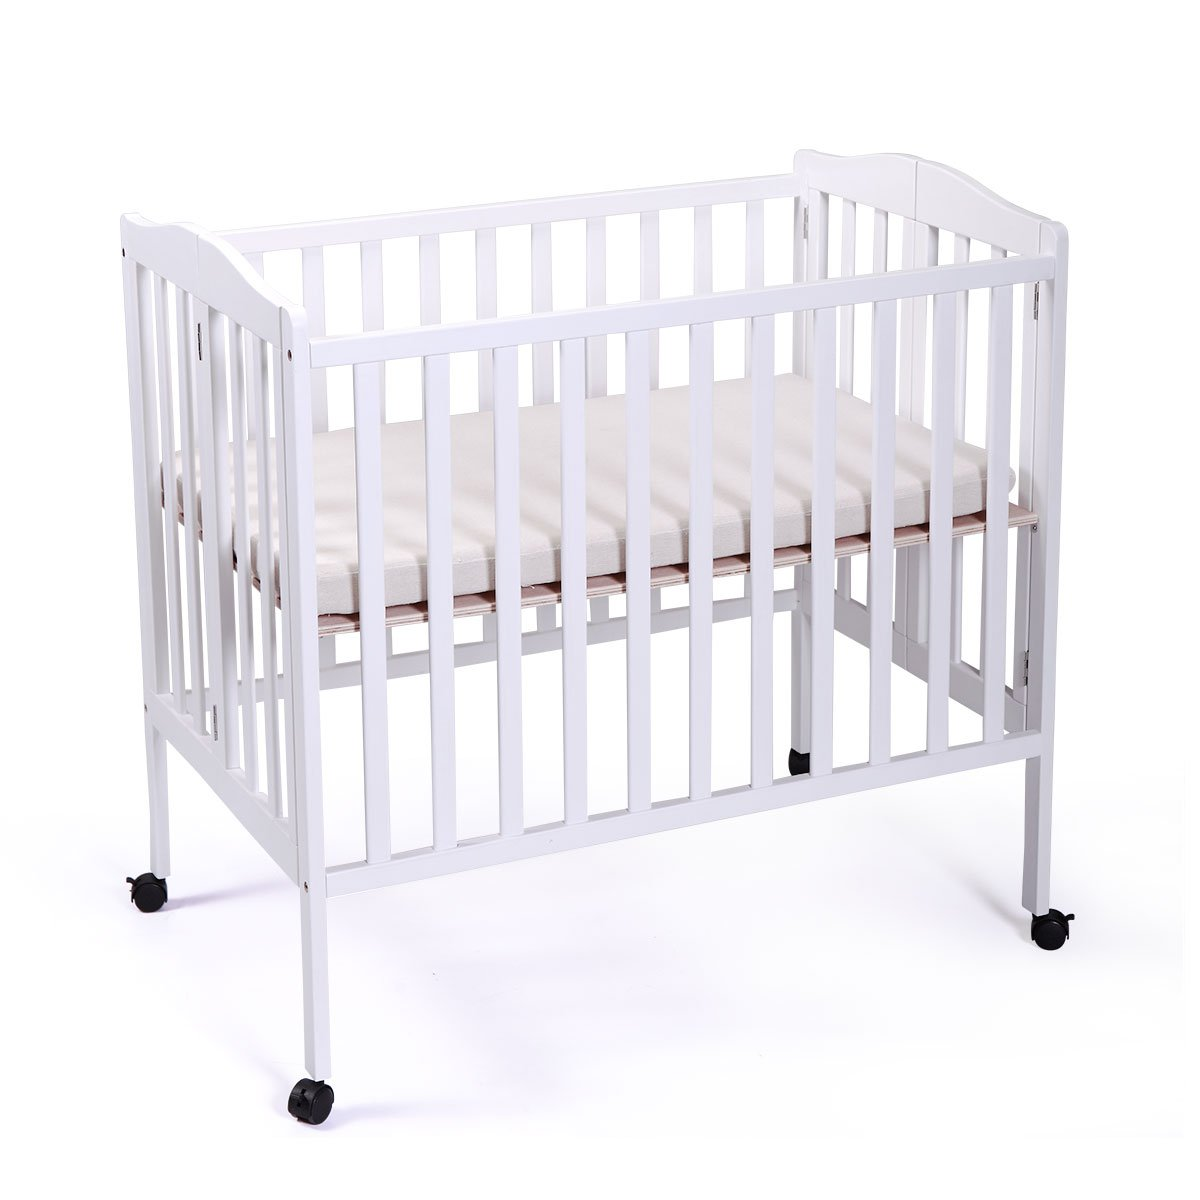 Amazon com lazymoon portable pine wood baby crib toddler bed nursery furniture safety white baby